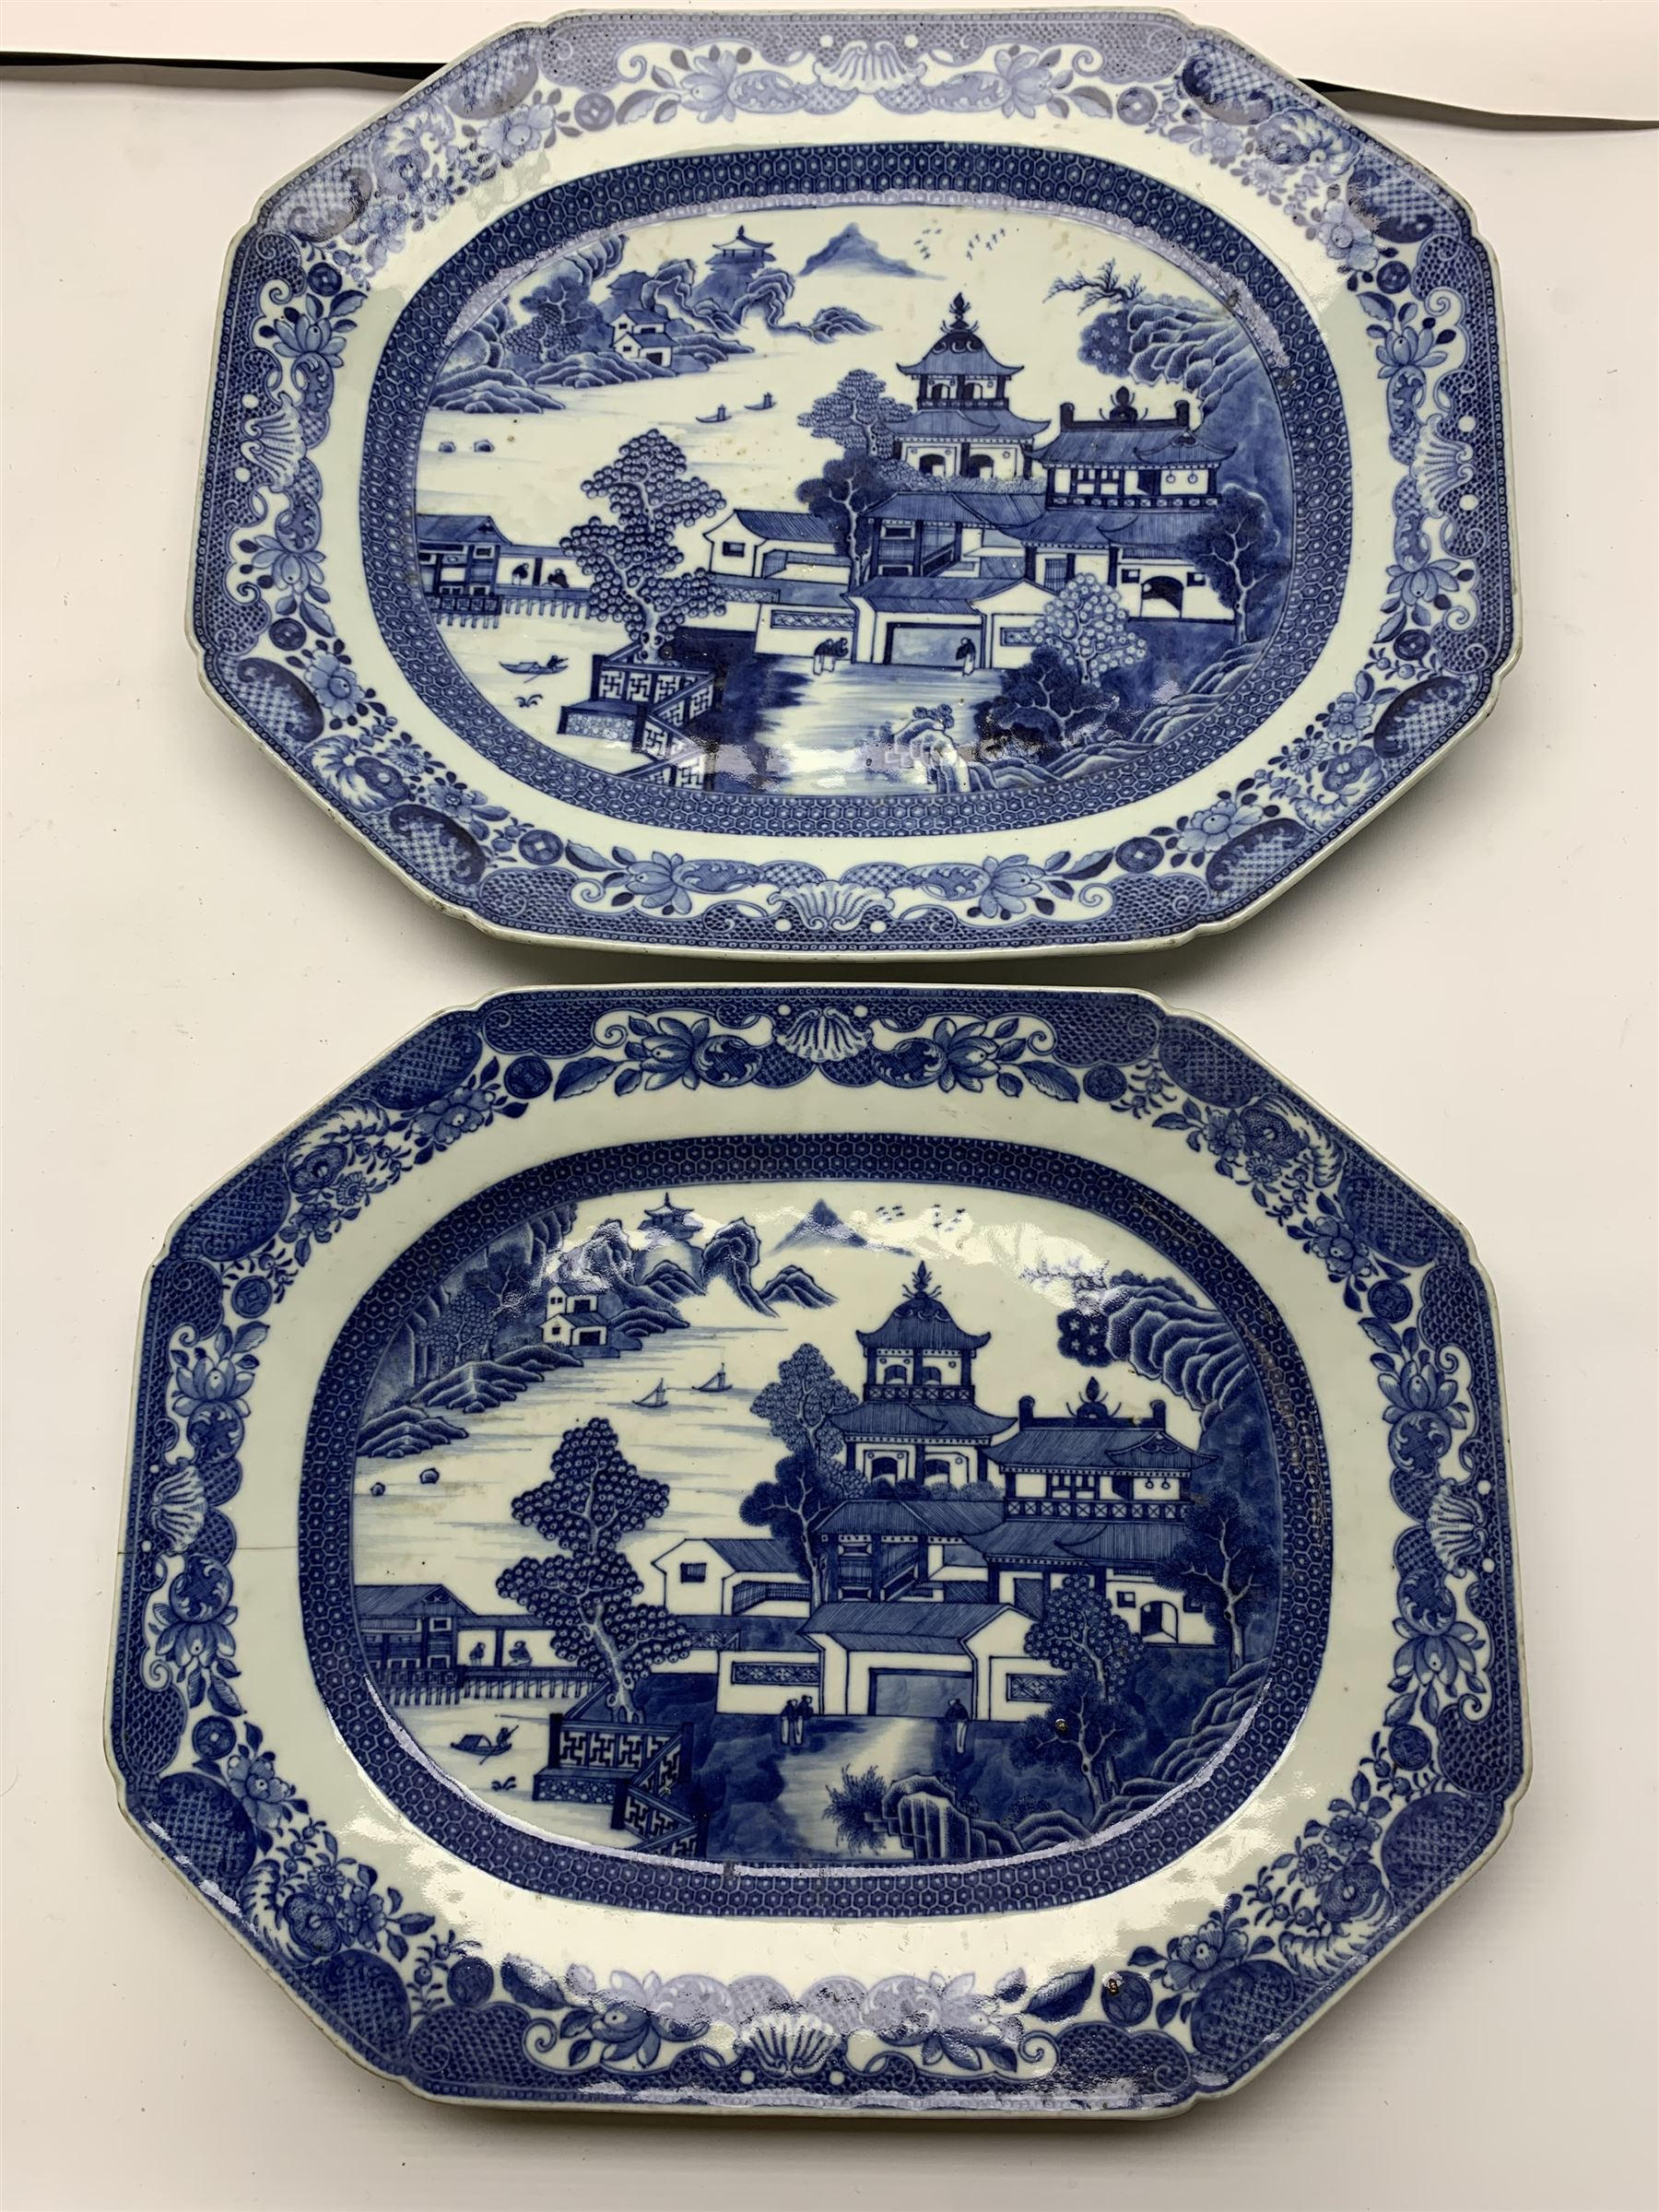 Late 18th/early 19th century Chinese export blue and white forty seven piece part dinner service - Image 11 of 20